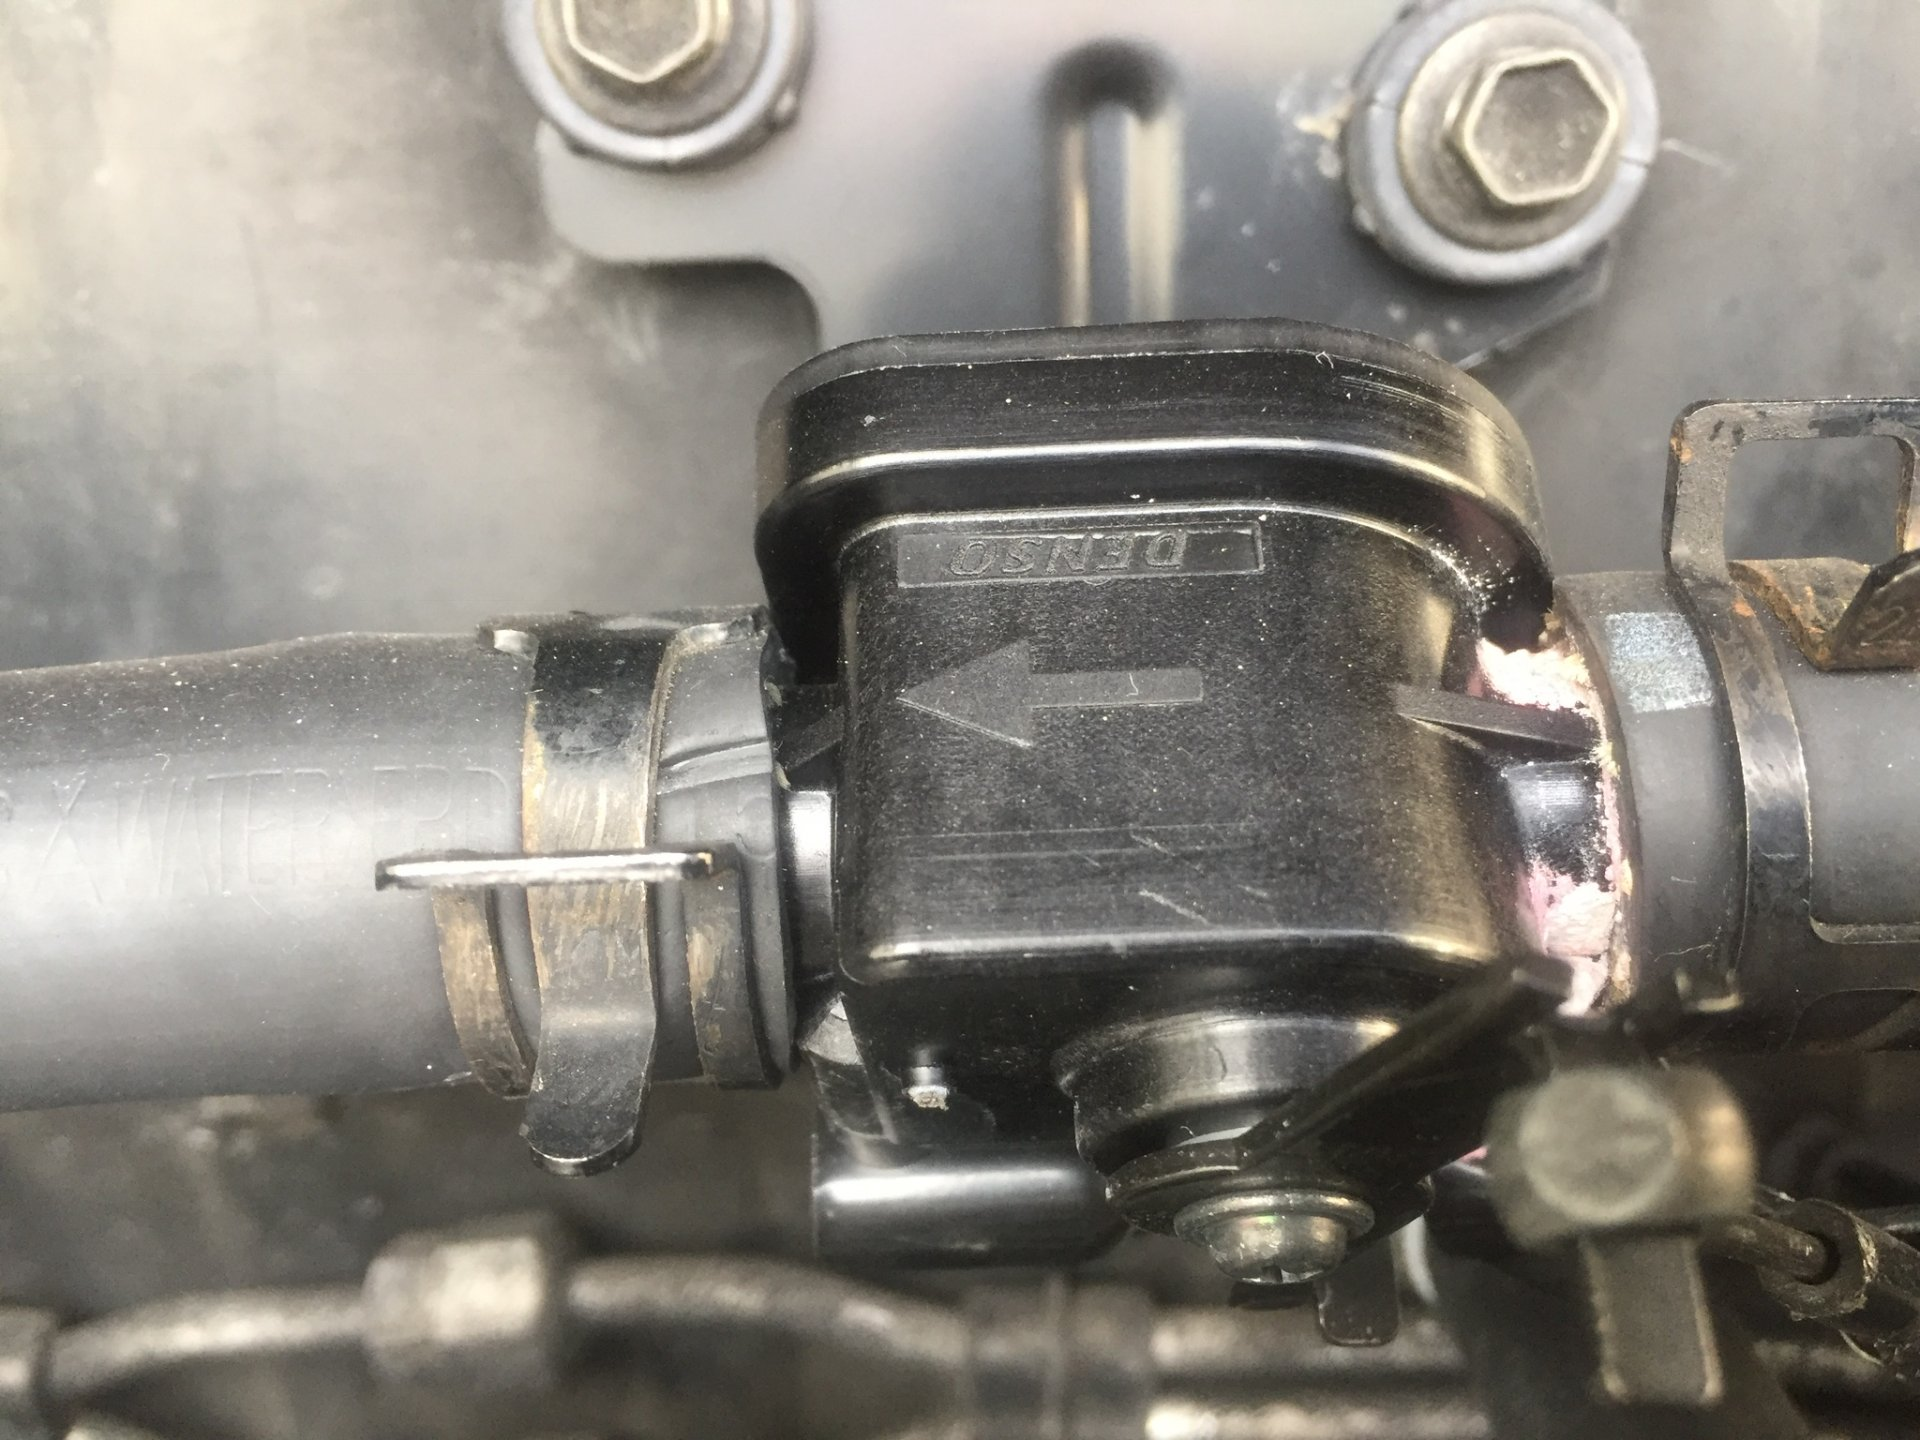 Losing coolant after fitting a new radiator cap | IH8MUD Forum